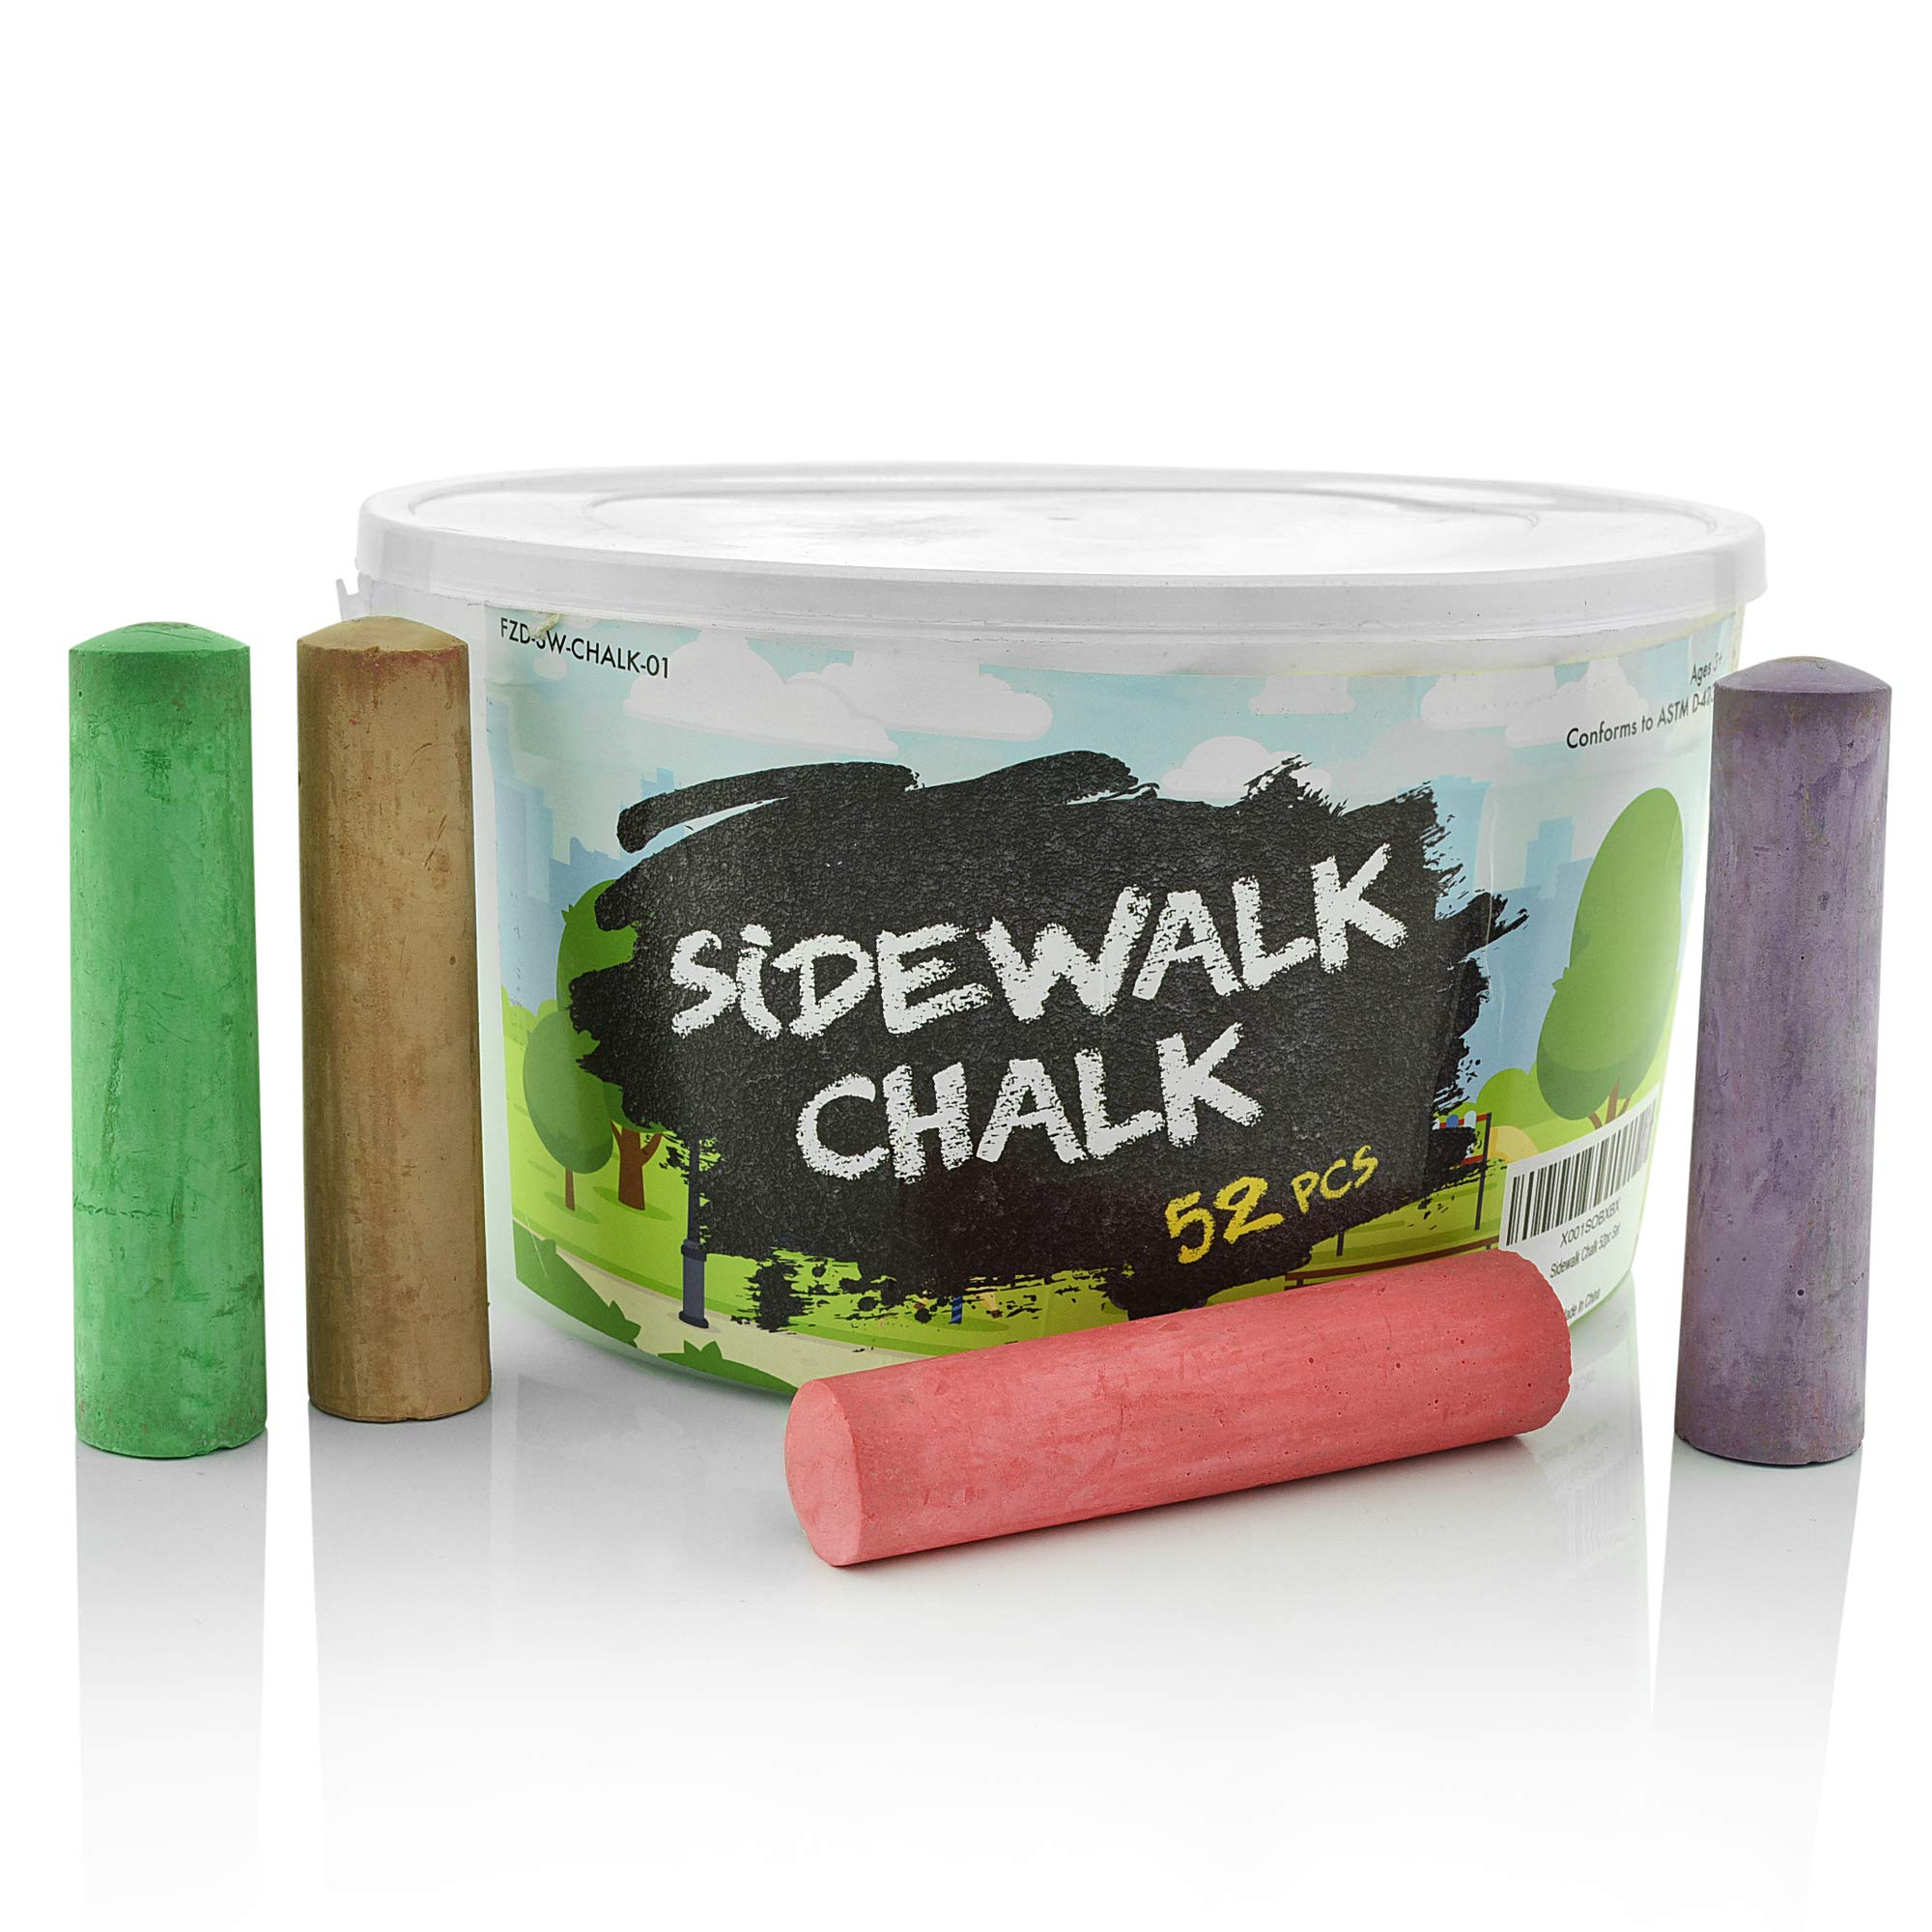 Sidewalk Chalk Set - Pack of 52 Multi-Color Jumbo Street Chalks - 10 Bright & Cheerful Colors - Nontoxic, Washable Tapered Chalks in a Reusable Plastic Container - 1 x 4 Inches by Fat Zebra Designs